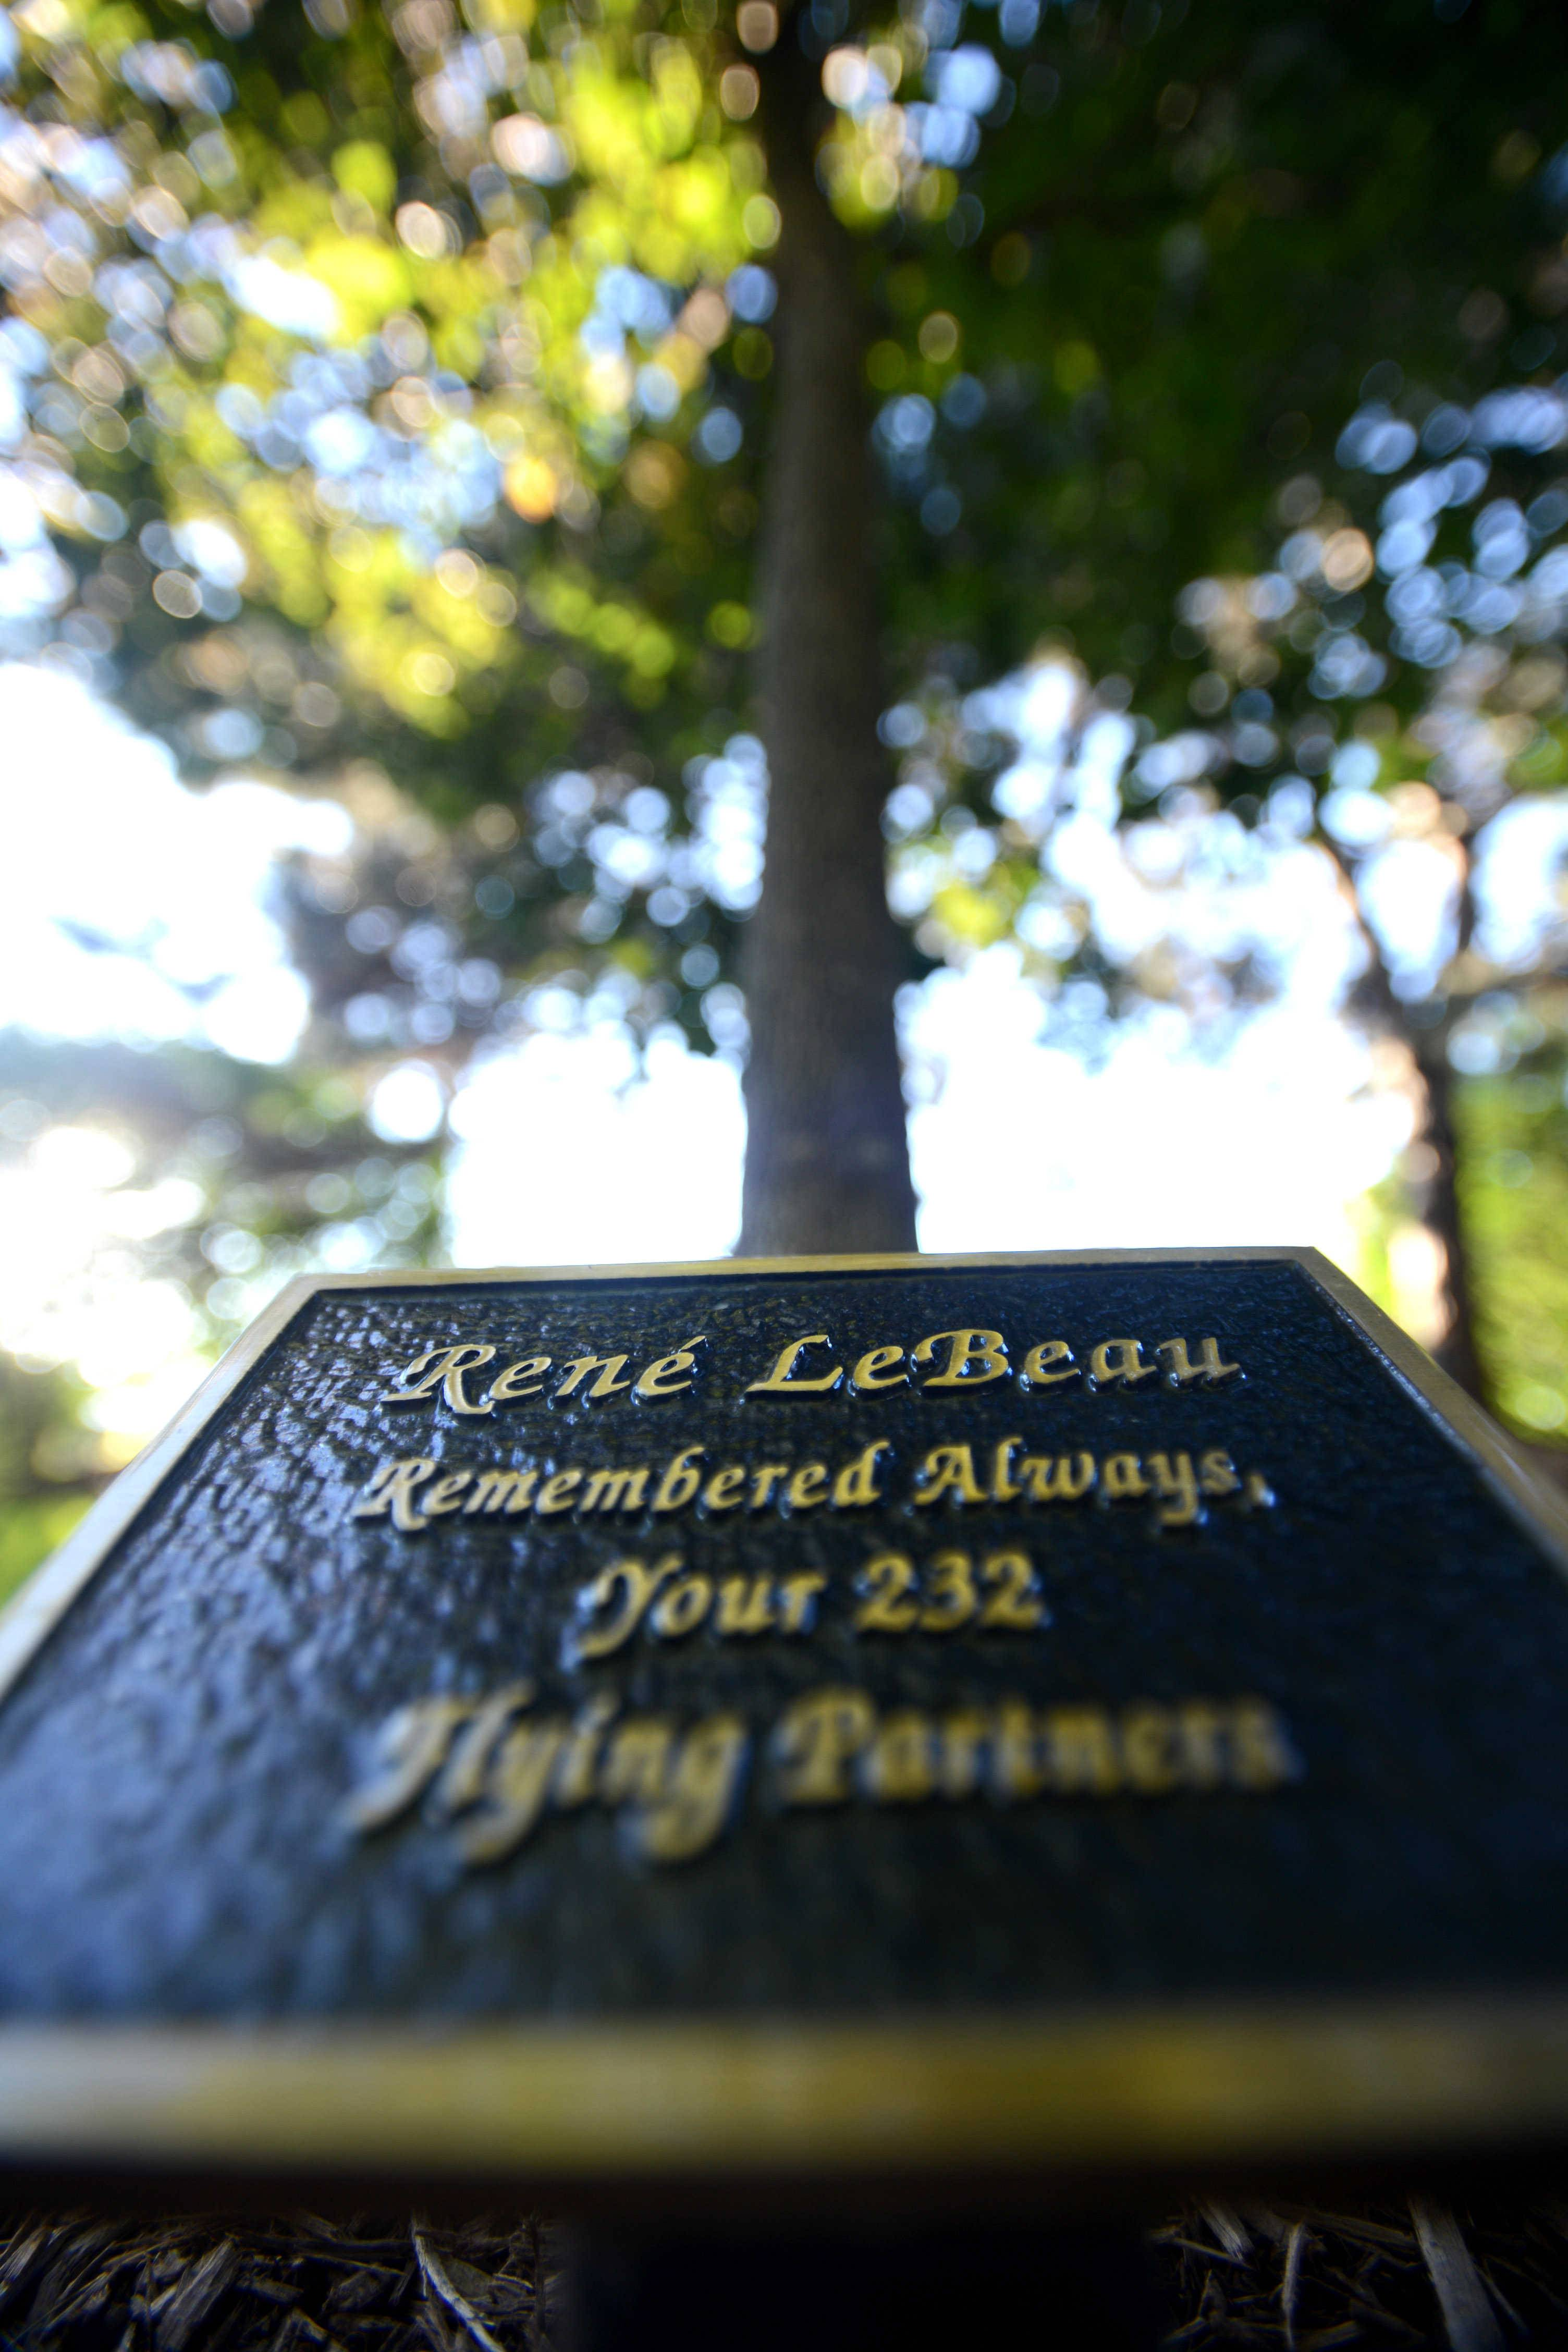 Two plaques and a bench mark a memorial to Flight 232 flight attendant Rene LeBeau near the Robert O. Atcher Municipal Center in Schaumburg. LeBeau, a Schaumburg resident,  perished when a DC-10 crashed in Iowa on July 19, 1989.